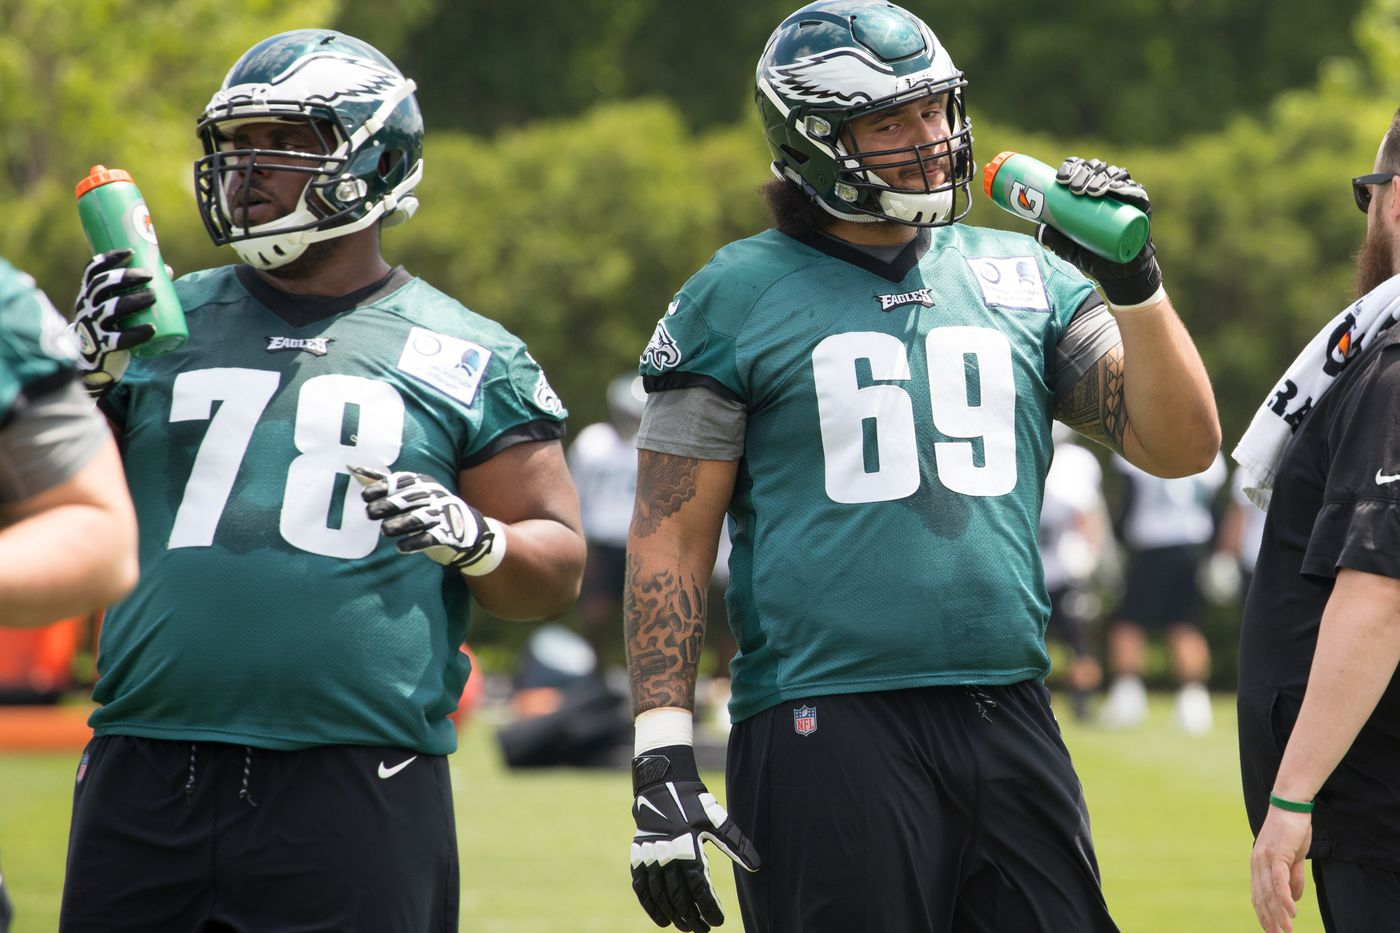 Rookie guard Matt Pryor is hands-on favorite to make the Eagles